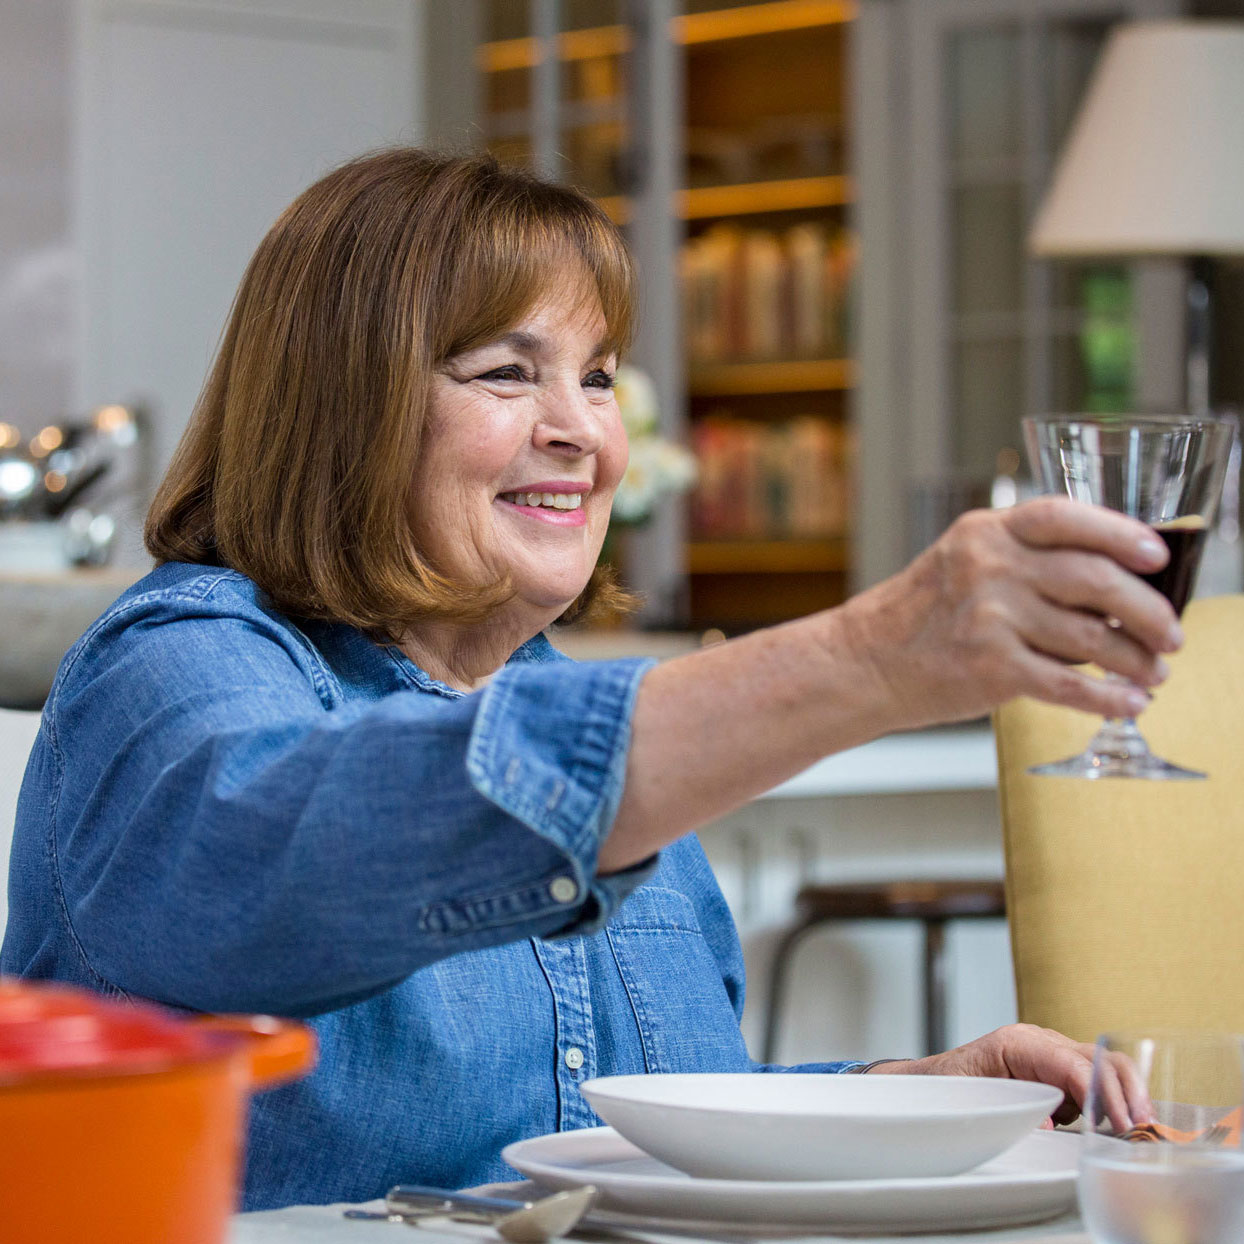 Ina Garten Just Shared Her Favorite Cold-Weather Soup Recipe—and We Can't Wait to Make It